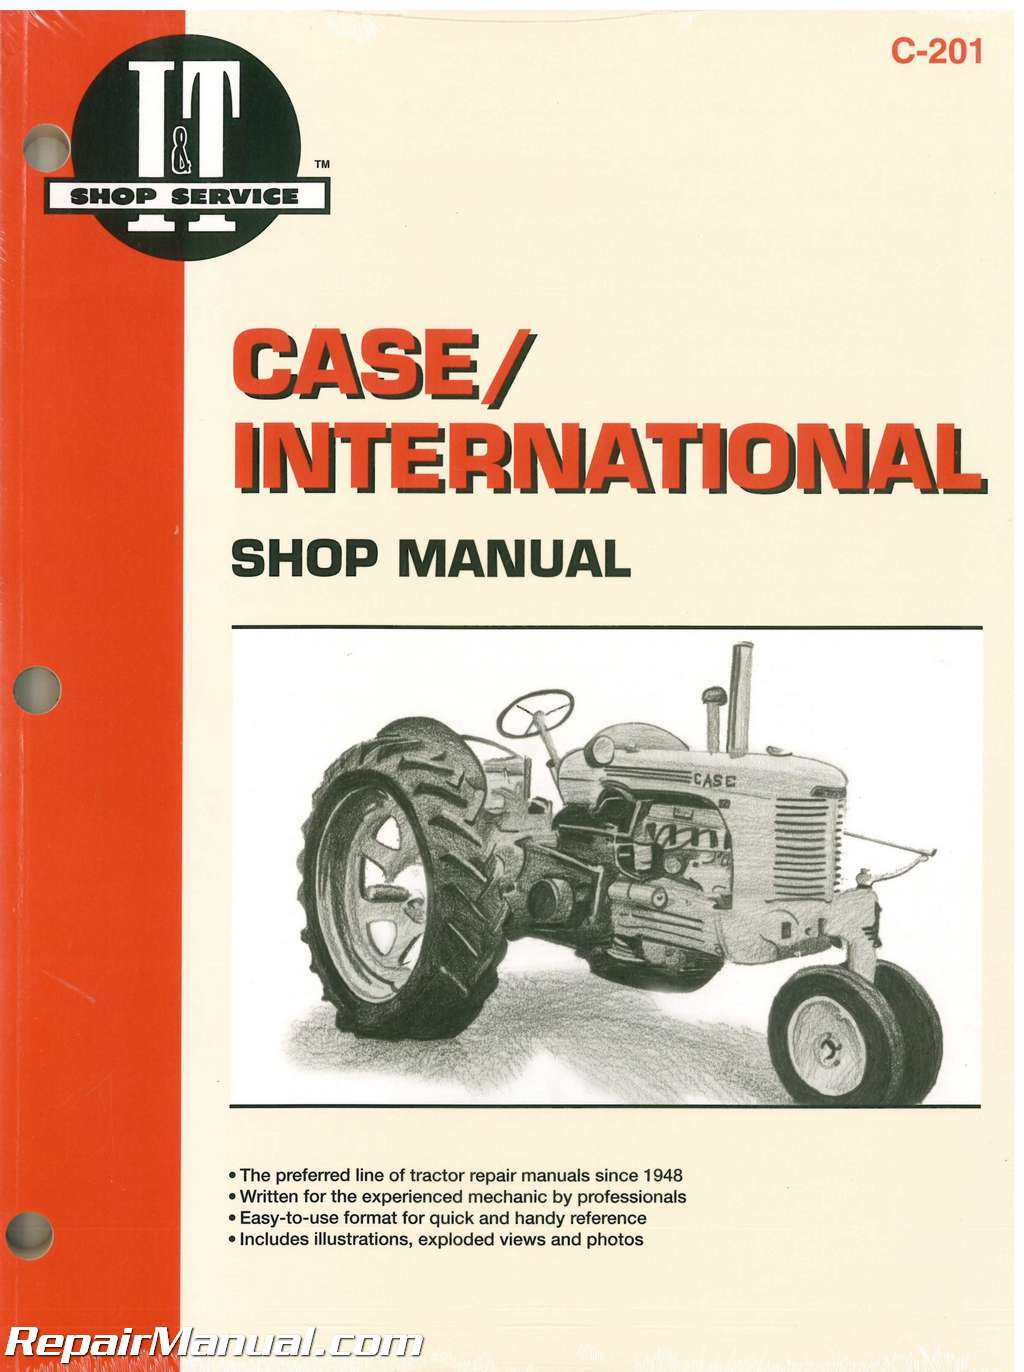 JI Case David Brown 200B, 300, 300B, 350, 400, 400B, 500B, 600B, 700B,  800B, C, D, L, LA, R, S, V and VA Tractor Repair Manual